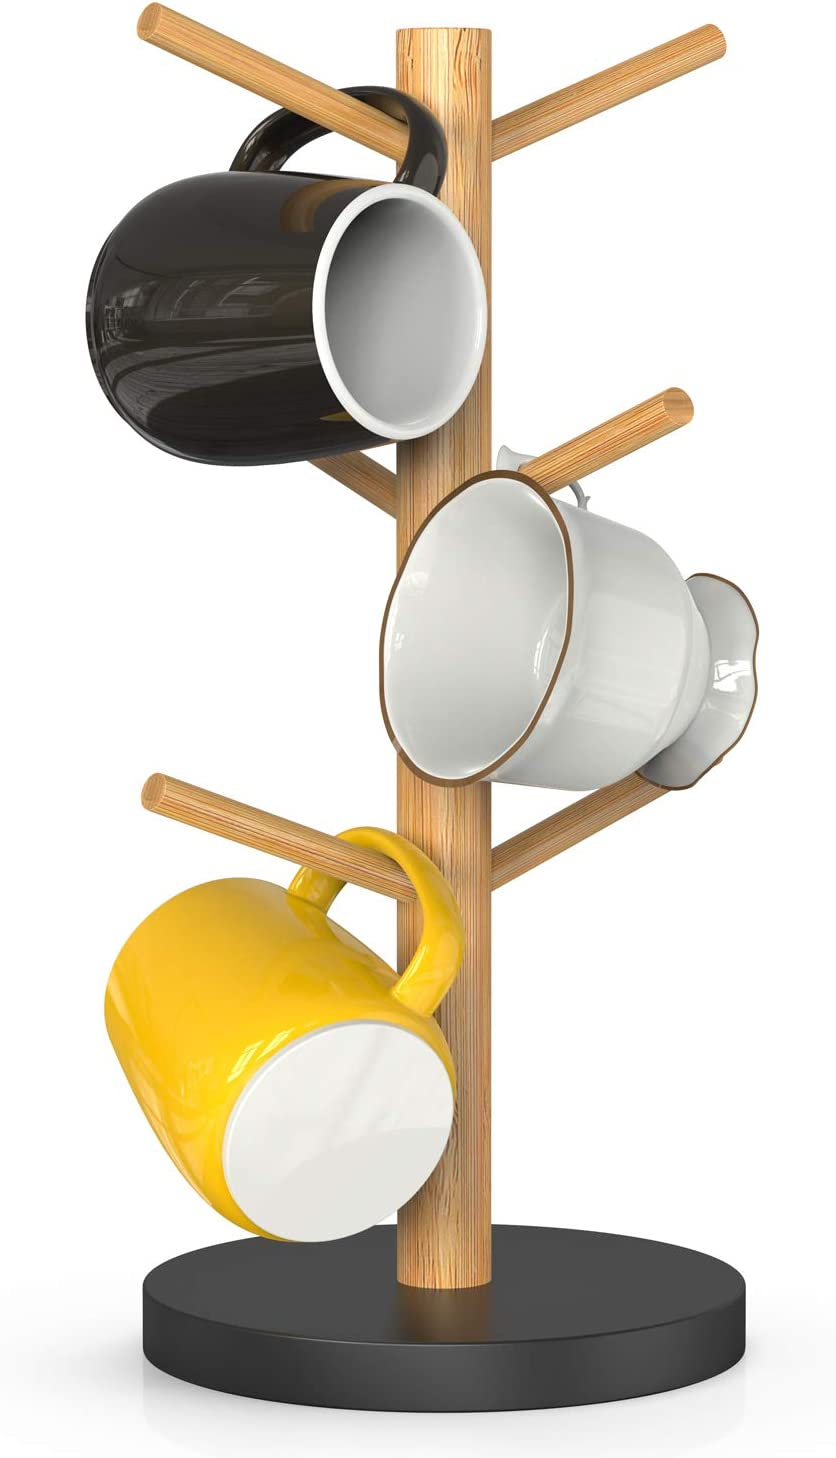 Bamboo Mug Rack, Coffee Mug Tree, Coffee Cup Holder, Coffee Bar Accessories with 6 Hooks